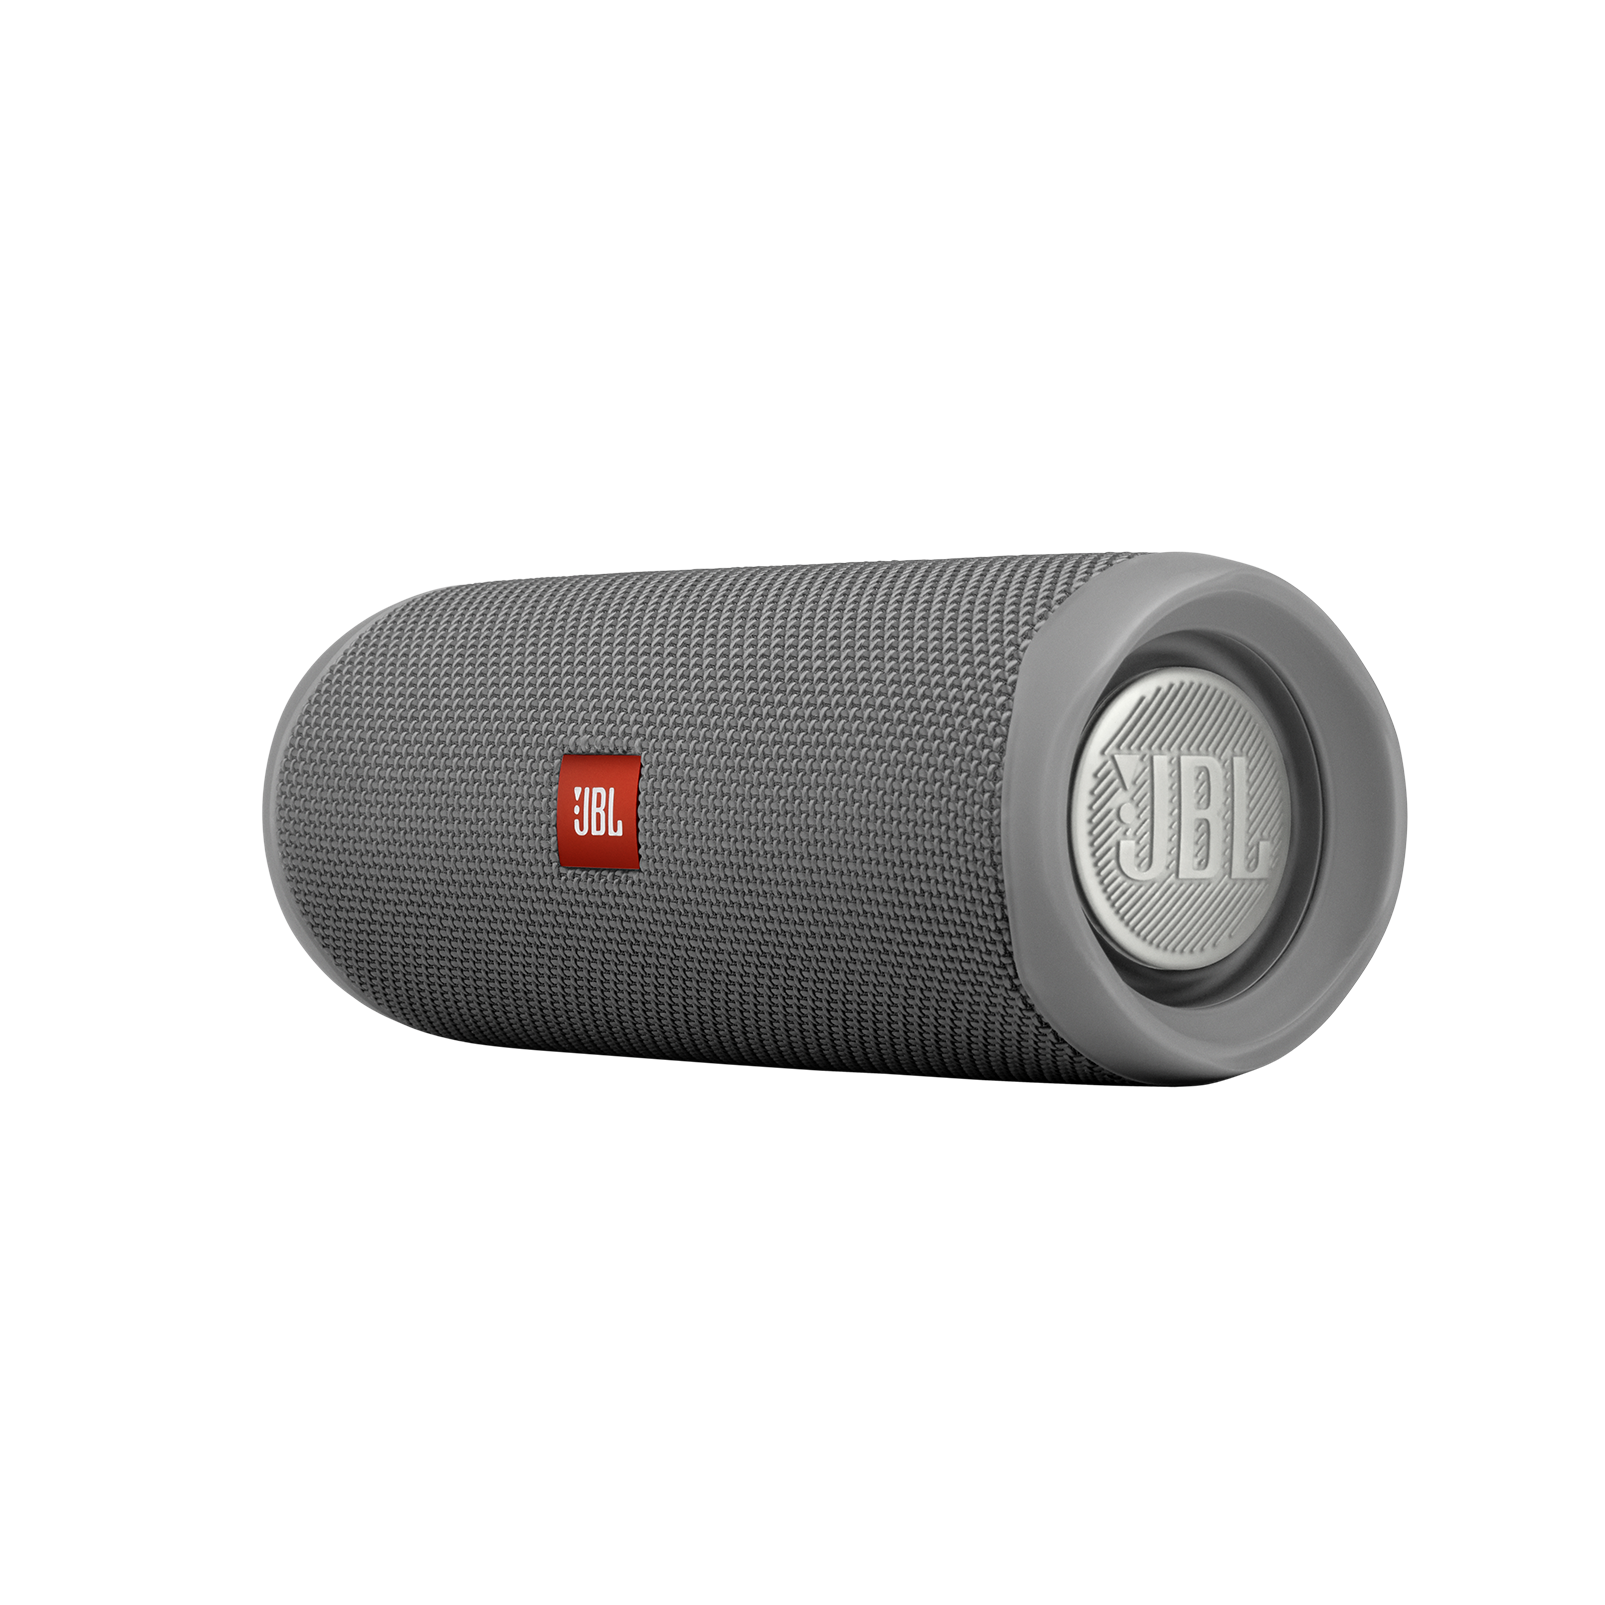 JBL FLIP 5 - Grey - Portable Waterproof Speaker - Detailshot 3